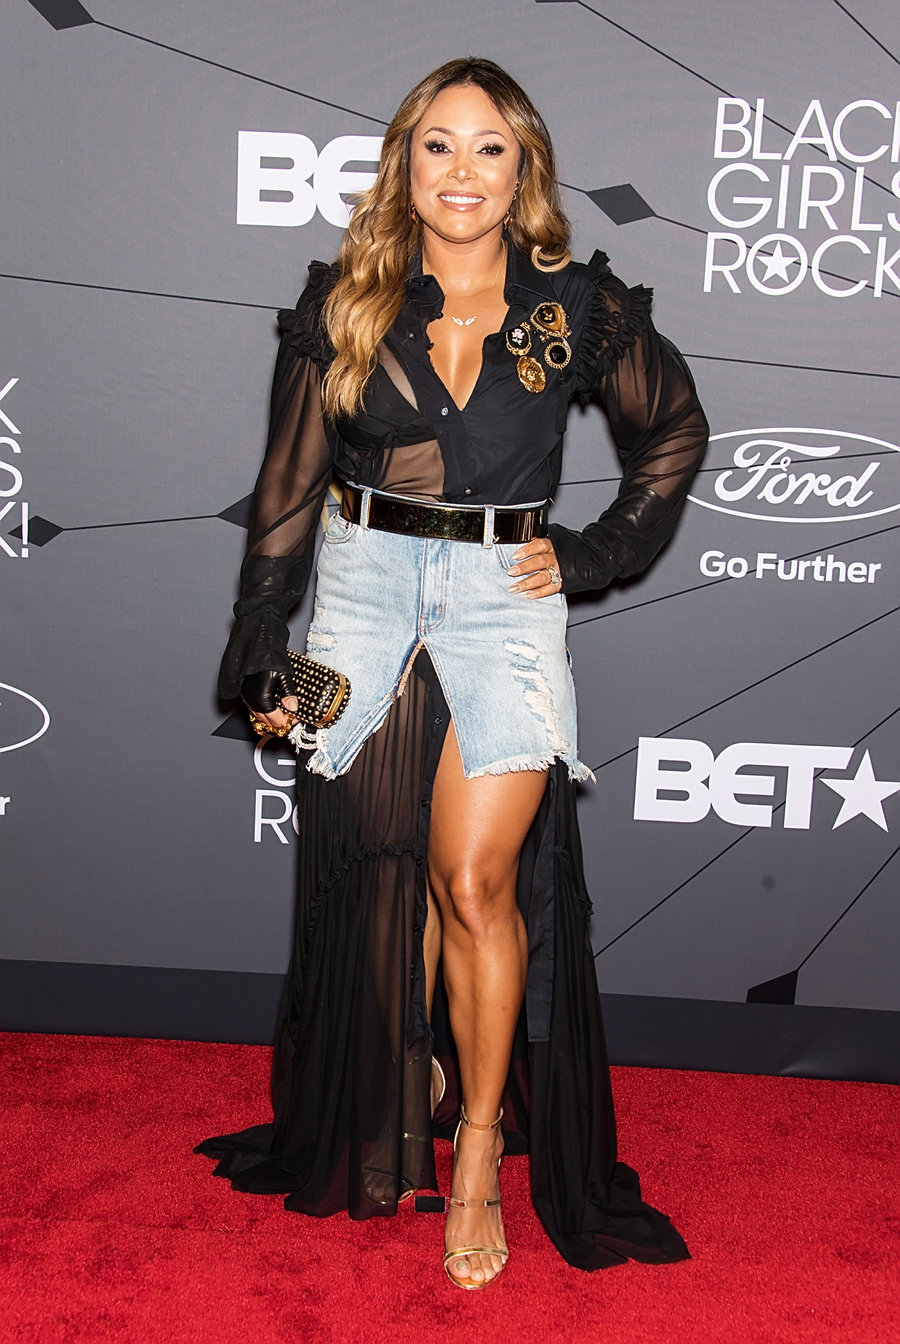 tamia-black-girls-rock-red-carpet-2018-billboard-1240